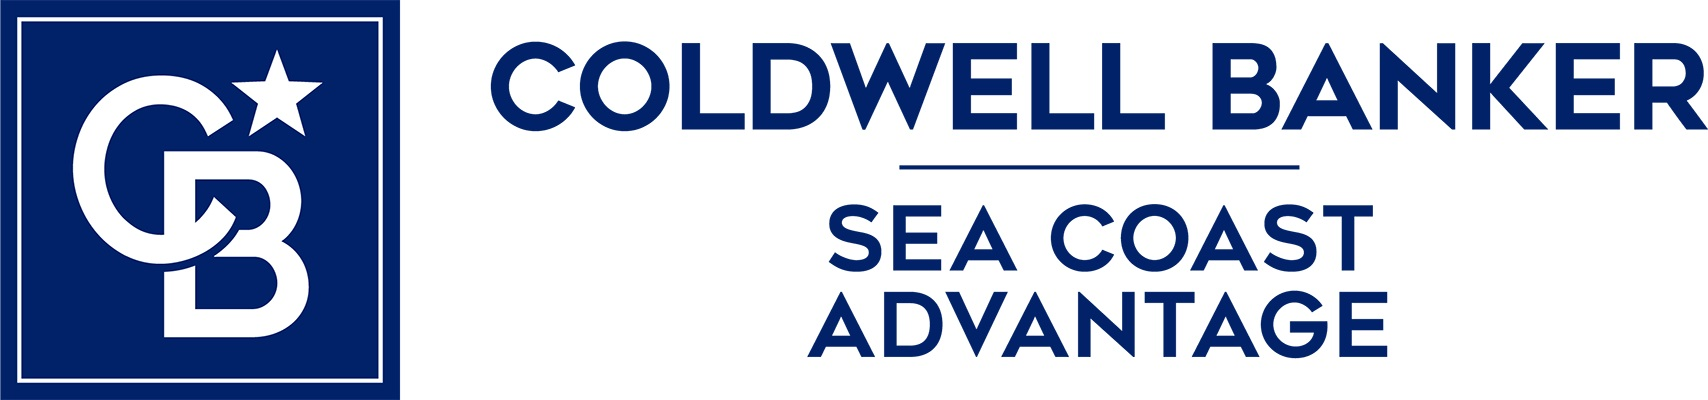 Kimberly Lewis - Coldwell Banker Sea Coast Advantage Realty